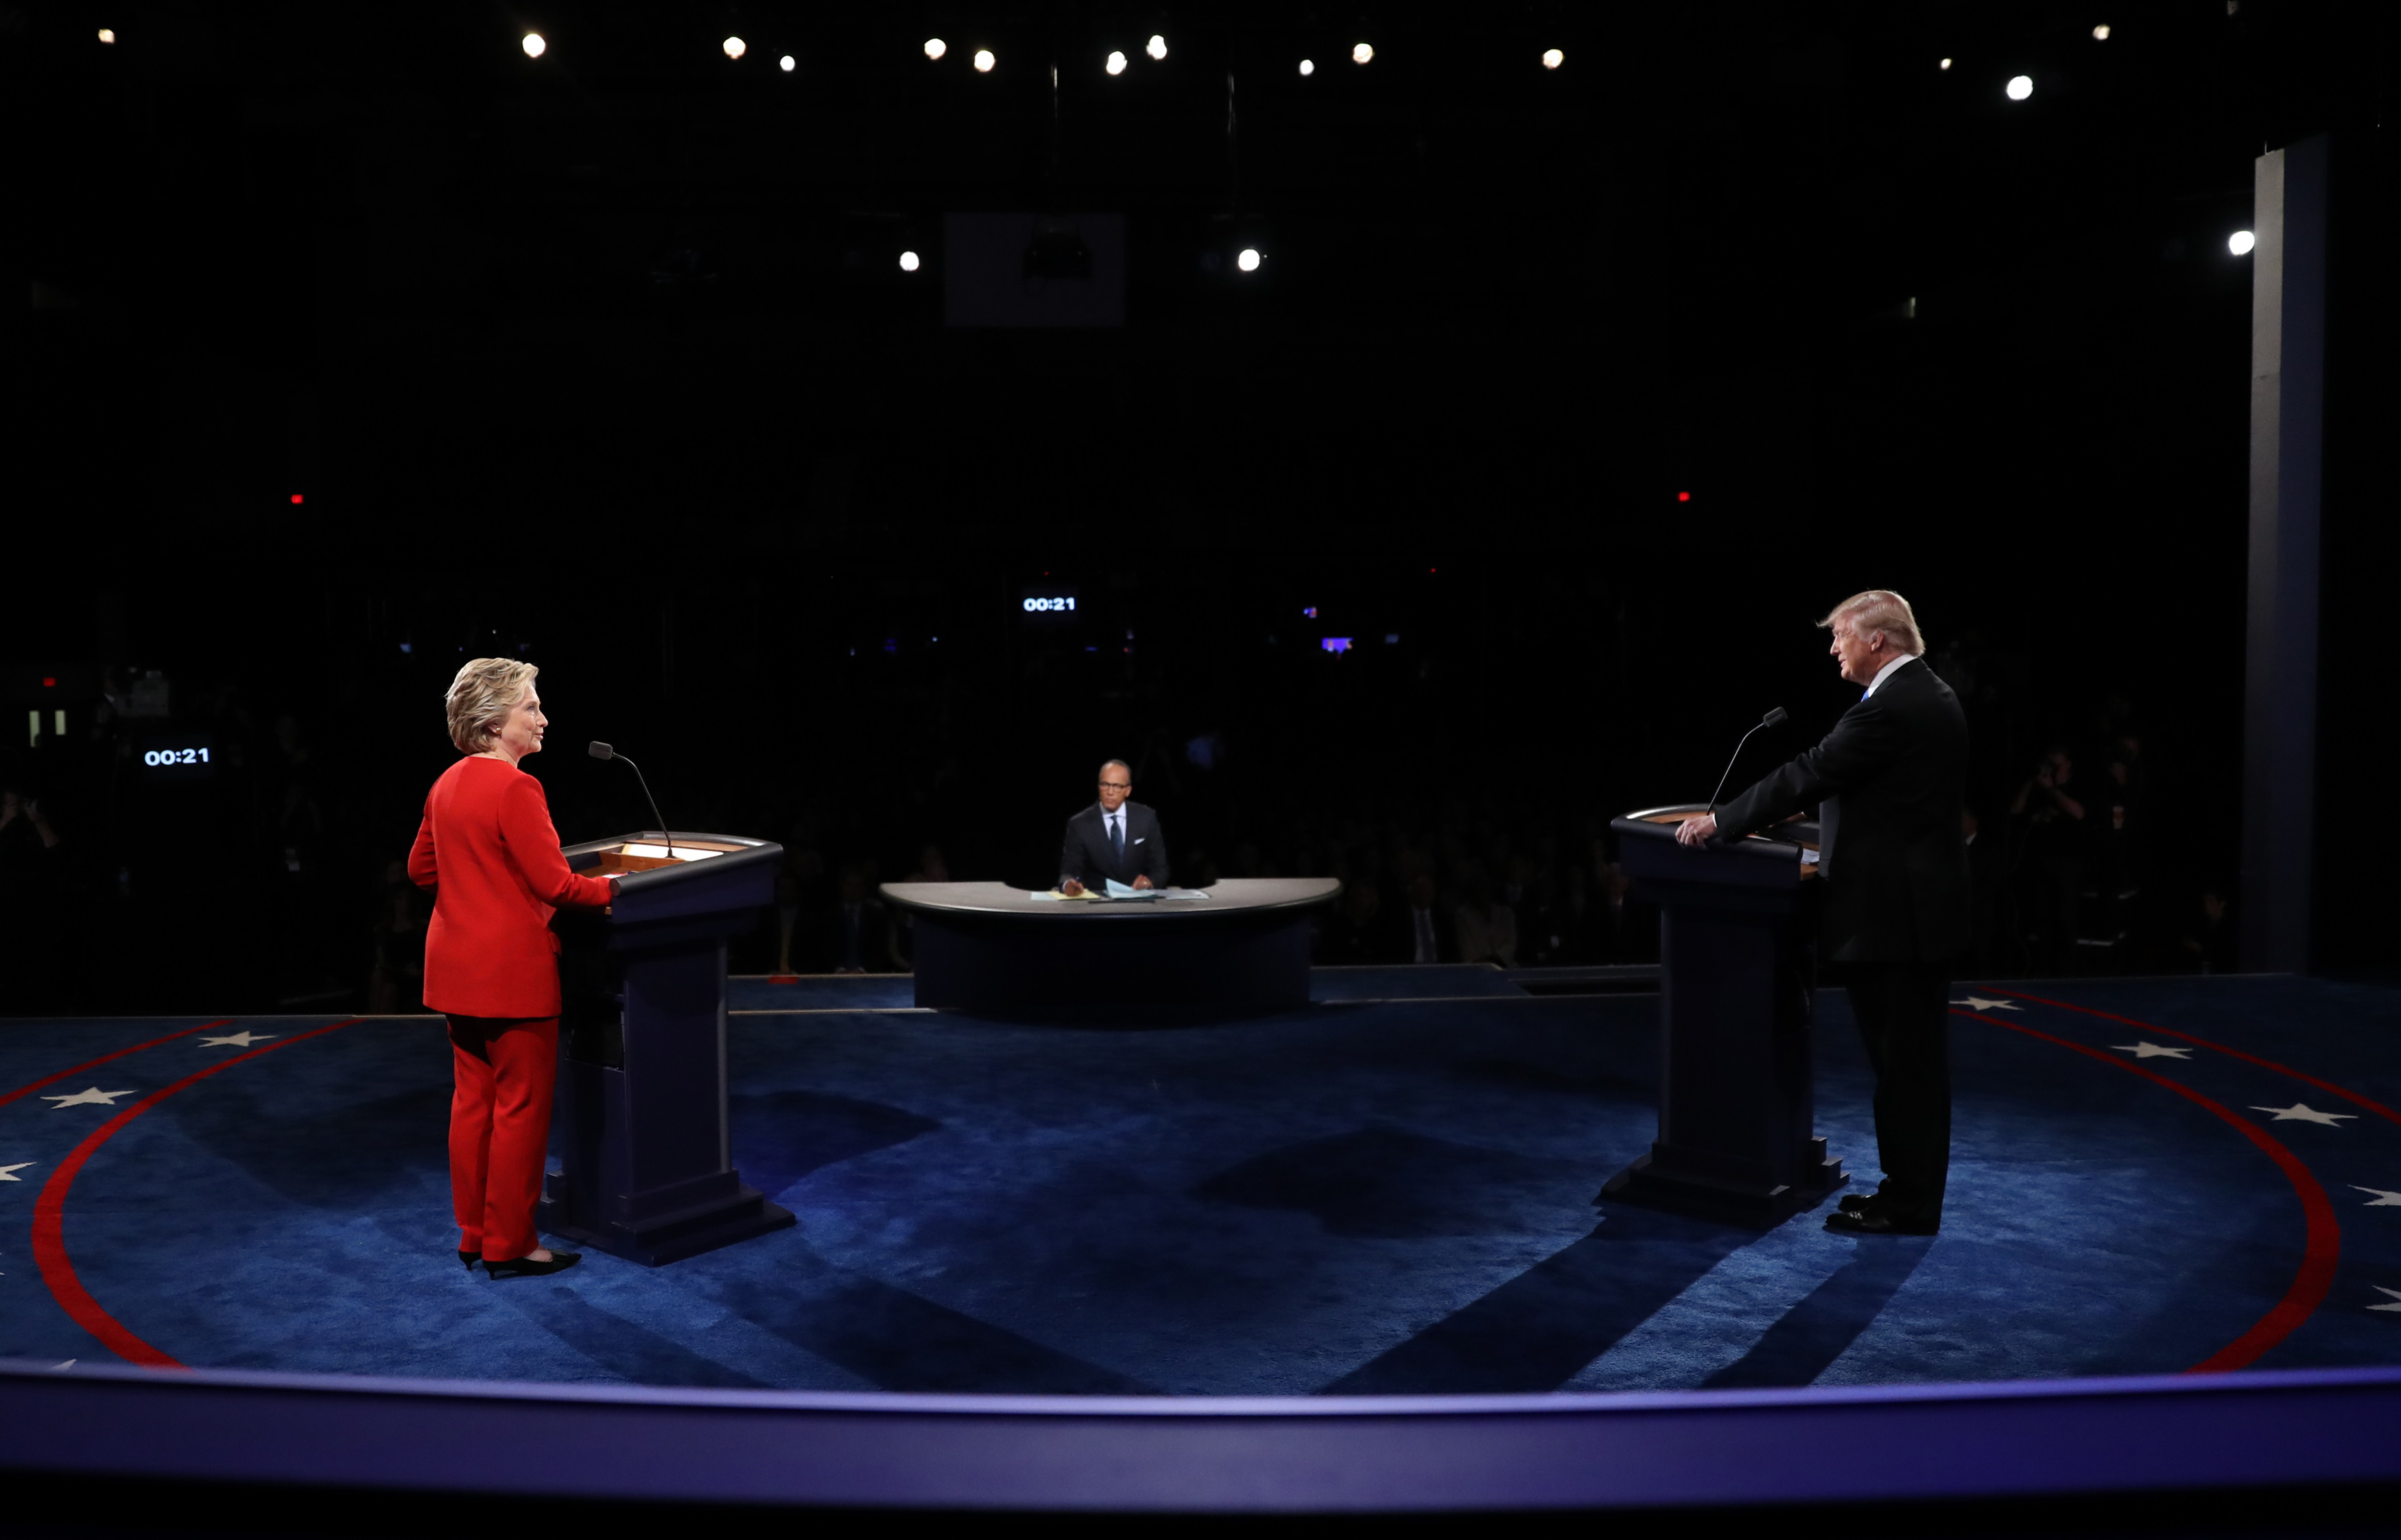 Republican U.S. presidential nominee Donald Trump and Democratic U.S. presidential nominee Hillary Clinton discuss a point during their first presidential debate at Hofstra University in Hempstead, New York, U.S., September 26, 2016. REUTERS/Joe Raedle/Pool  - RTSPKCQ